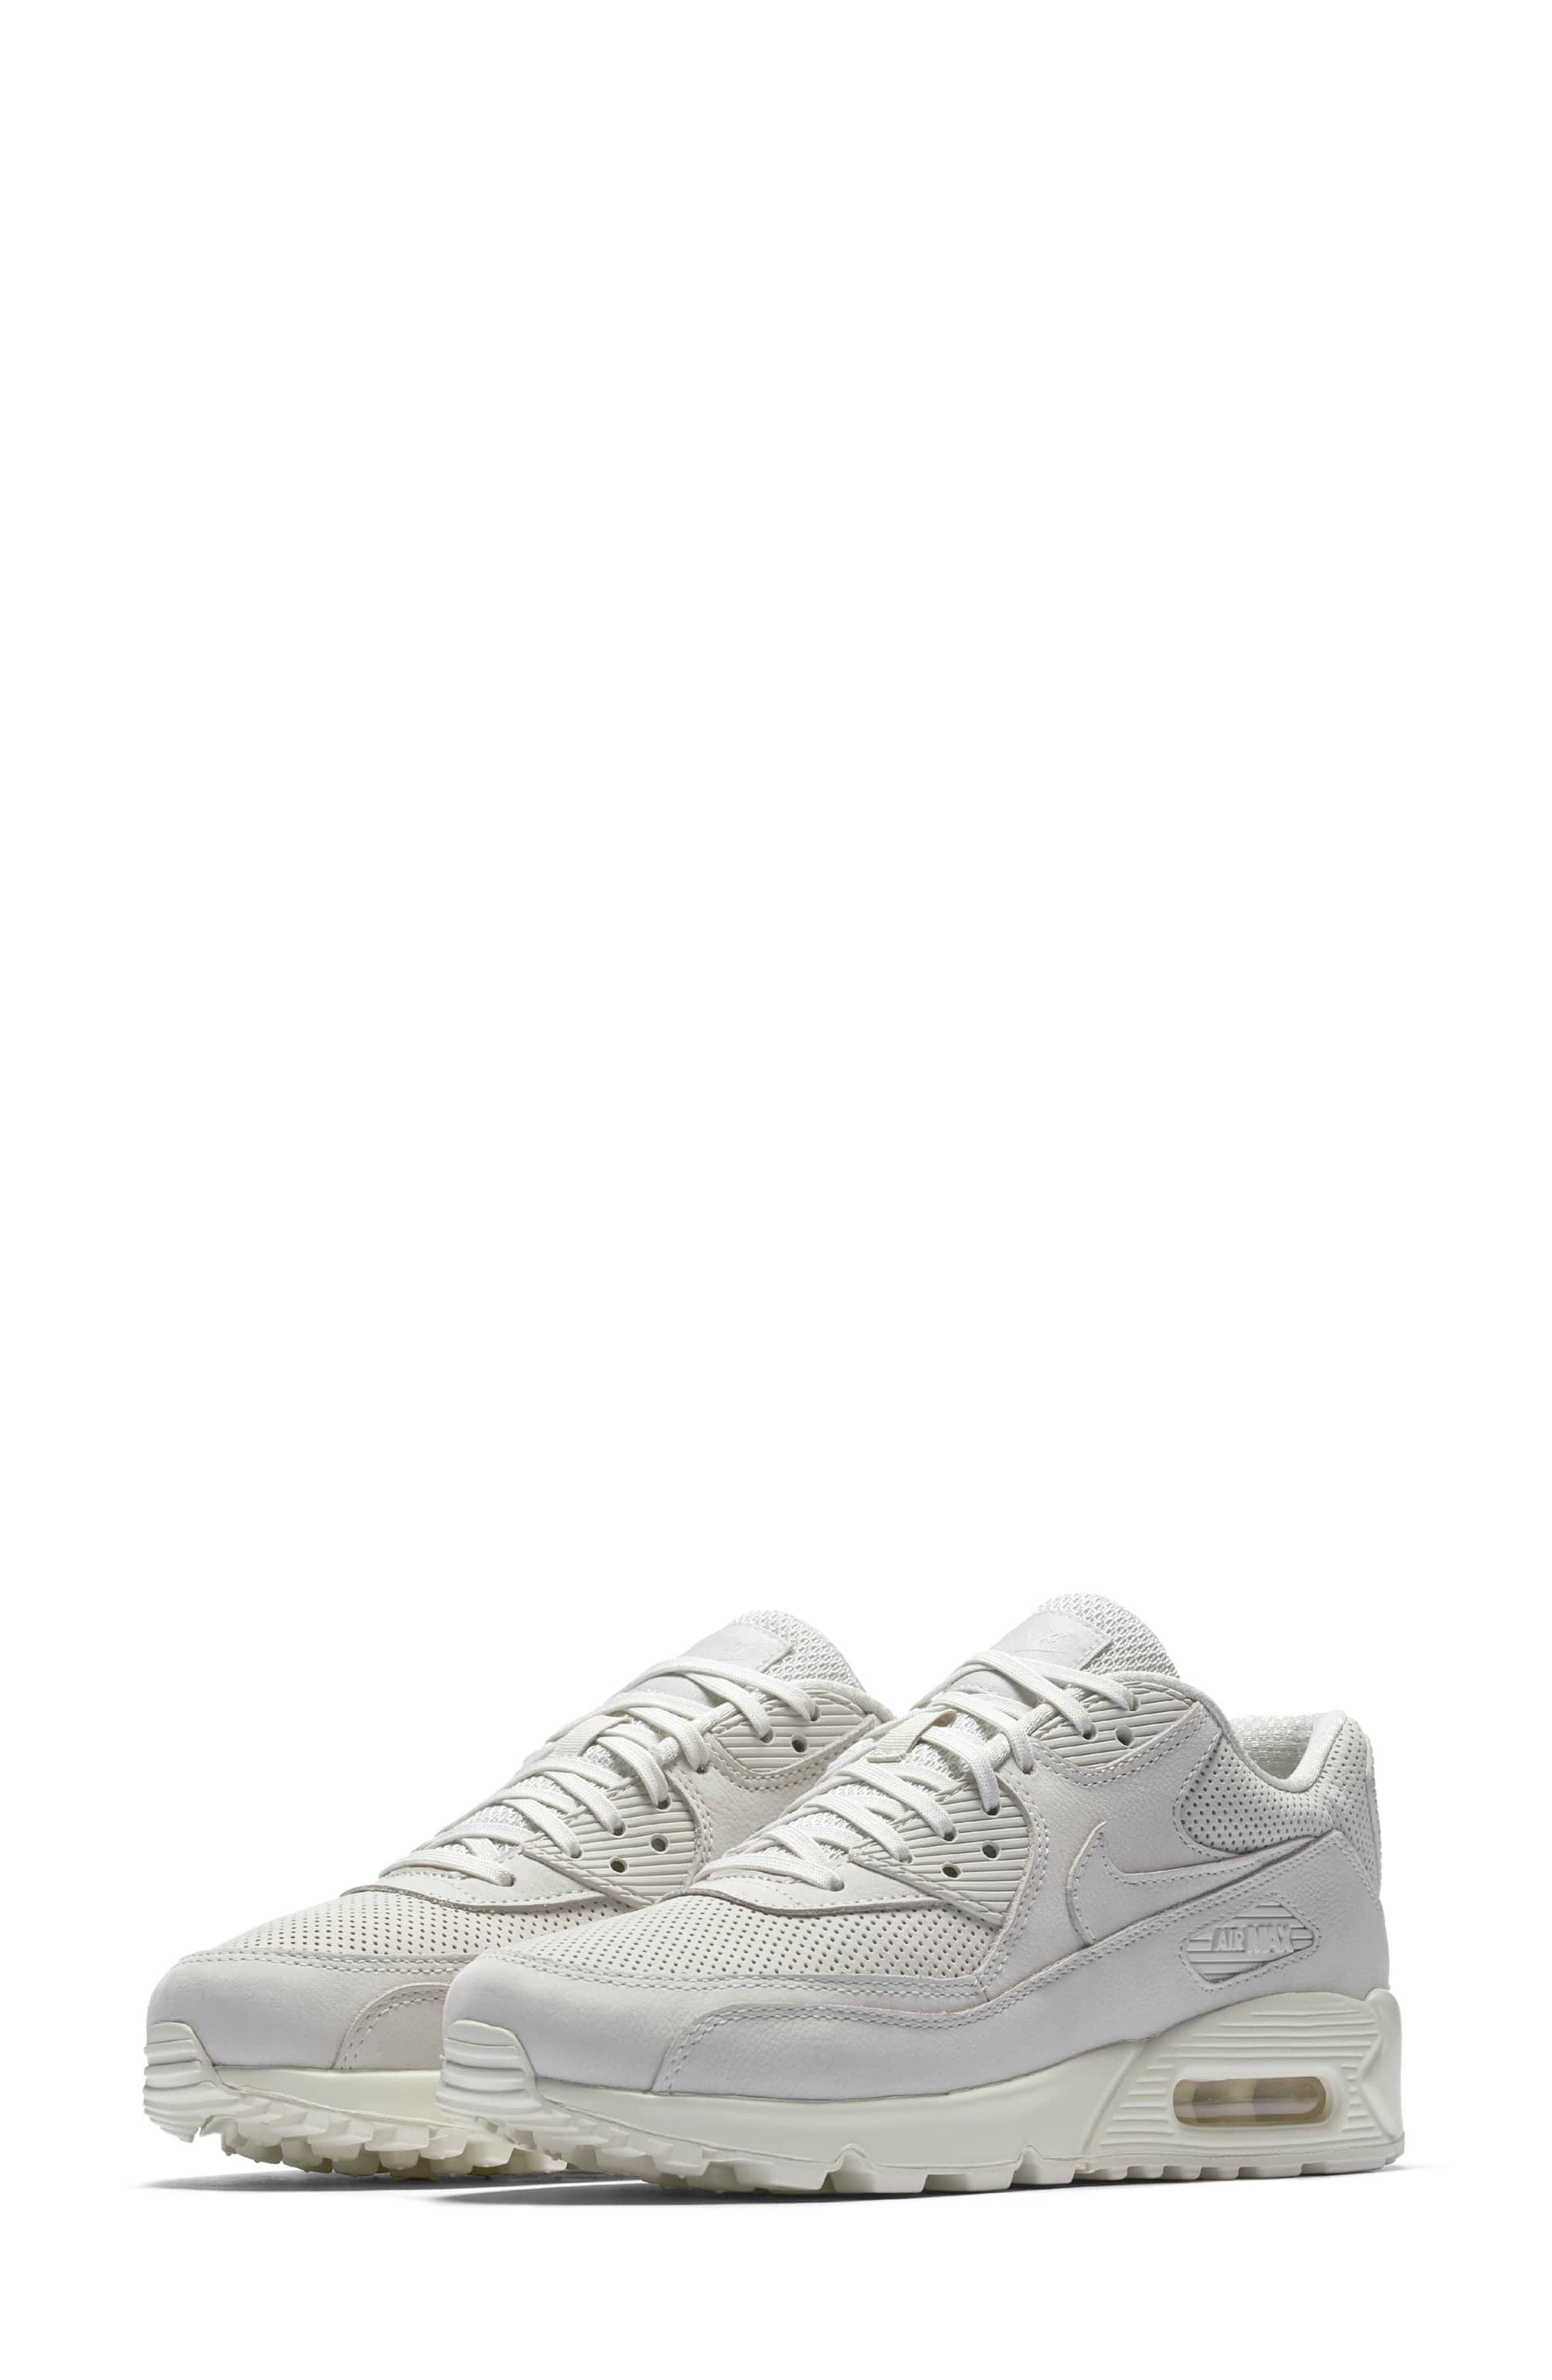 Alternate Image 1 Selected - Nike Air Max 90 Pinnacle Sneaker (Women's)